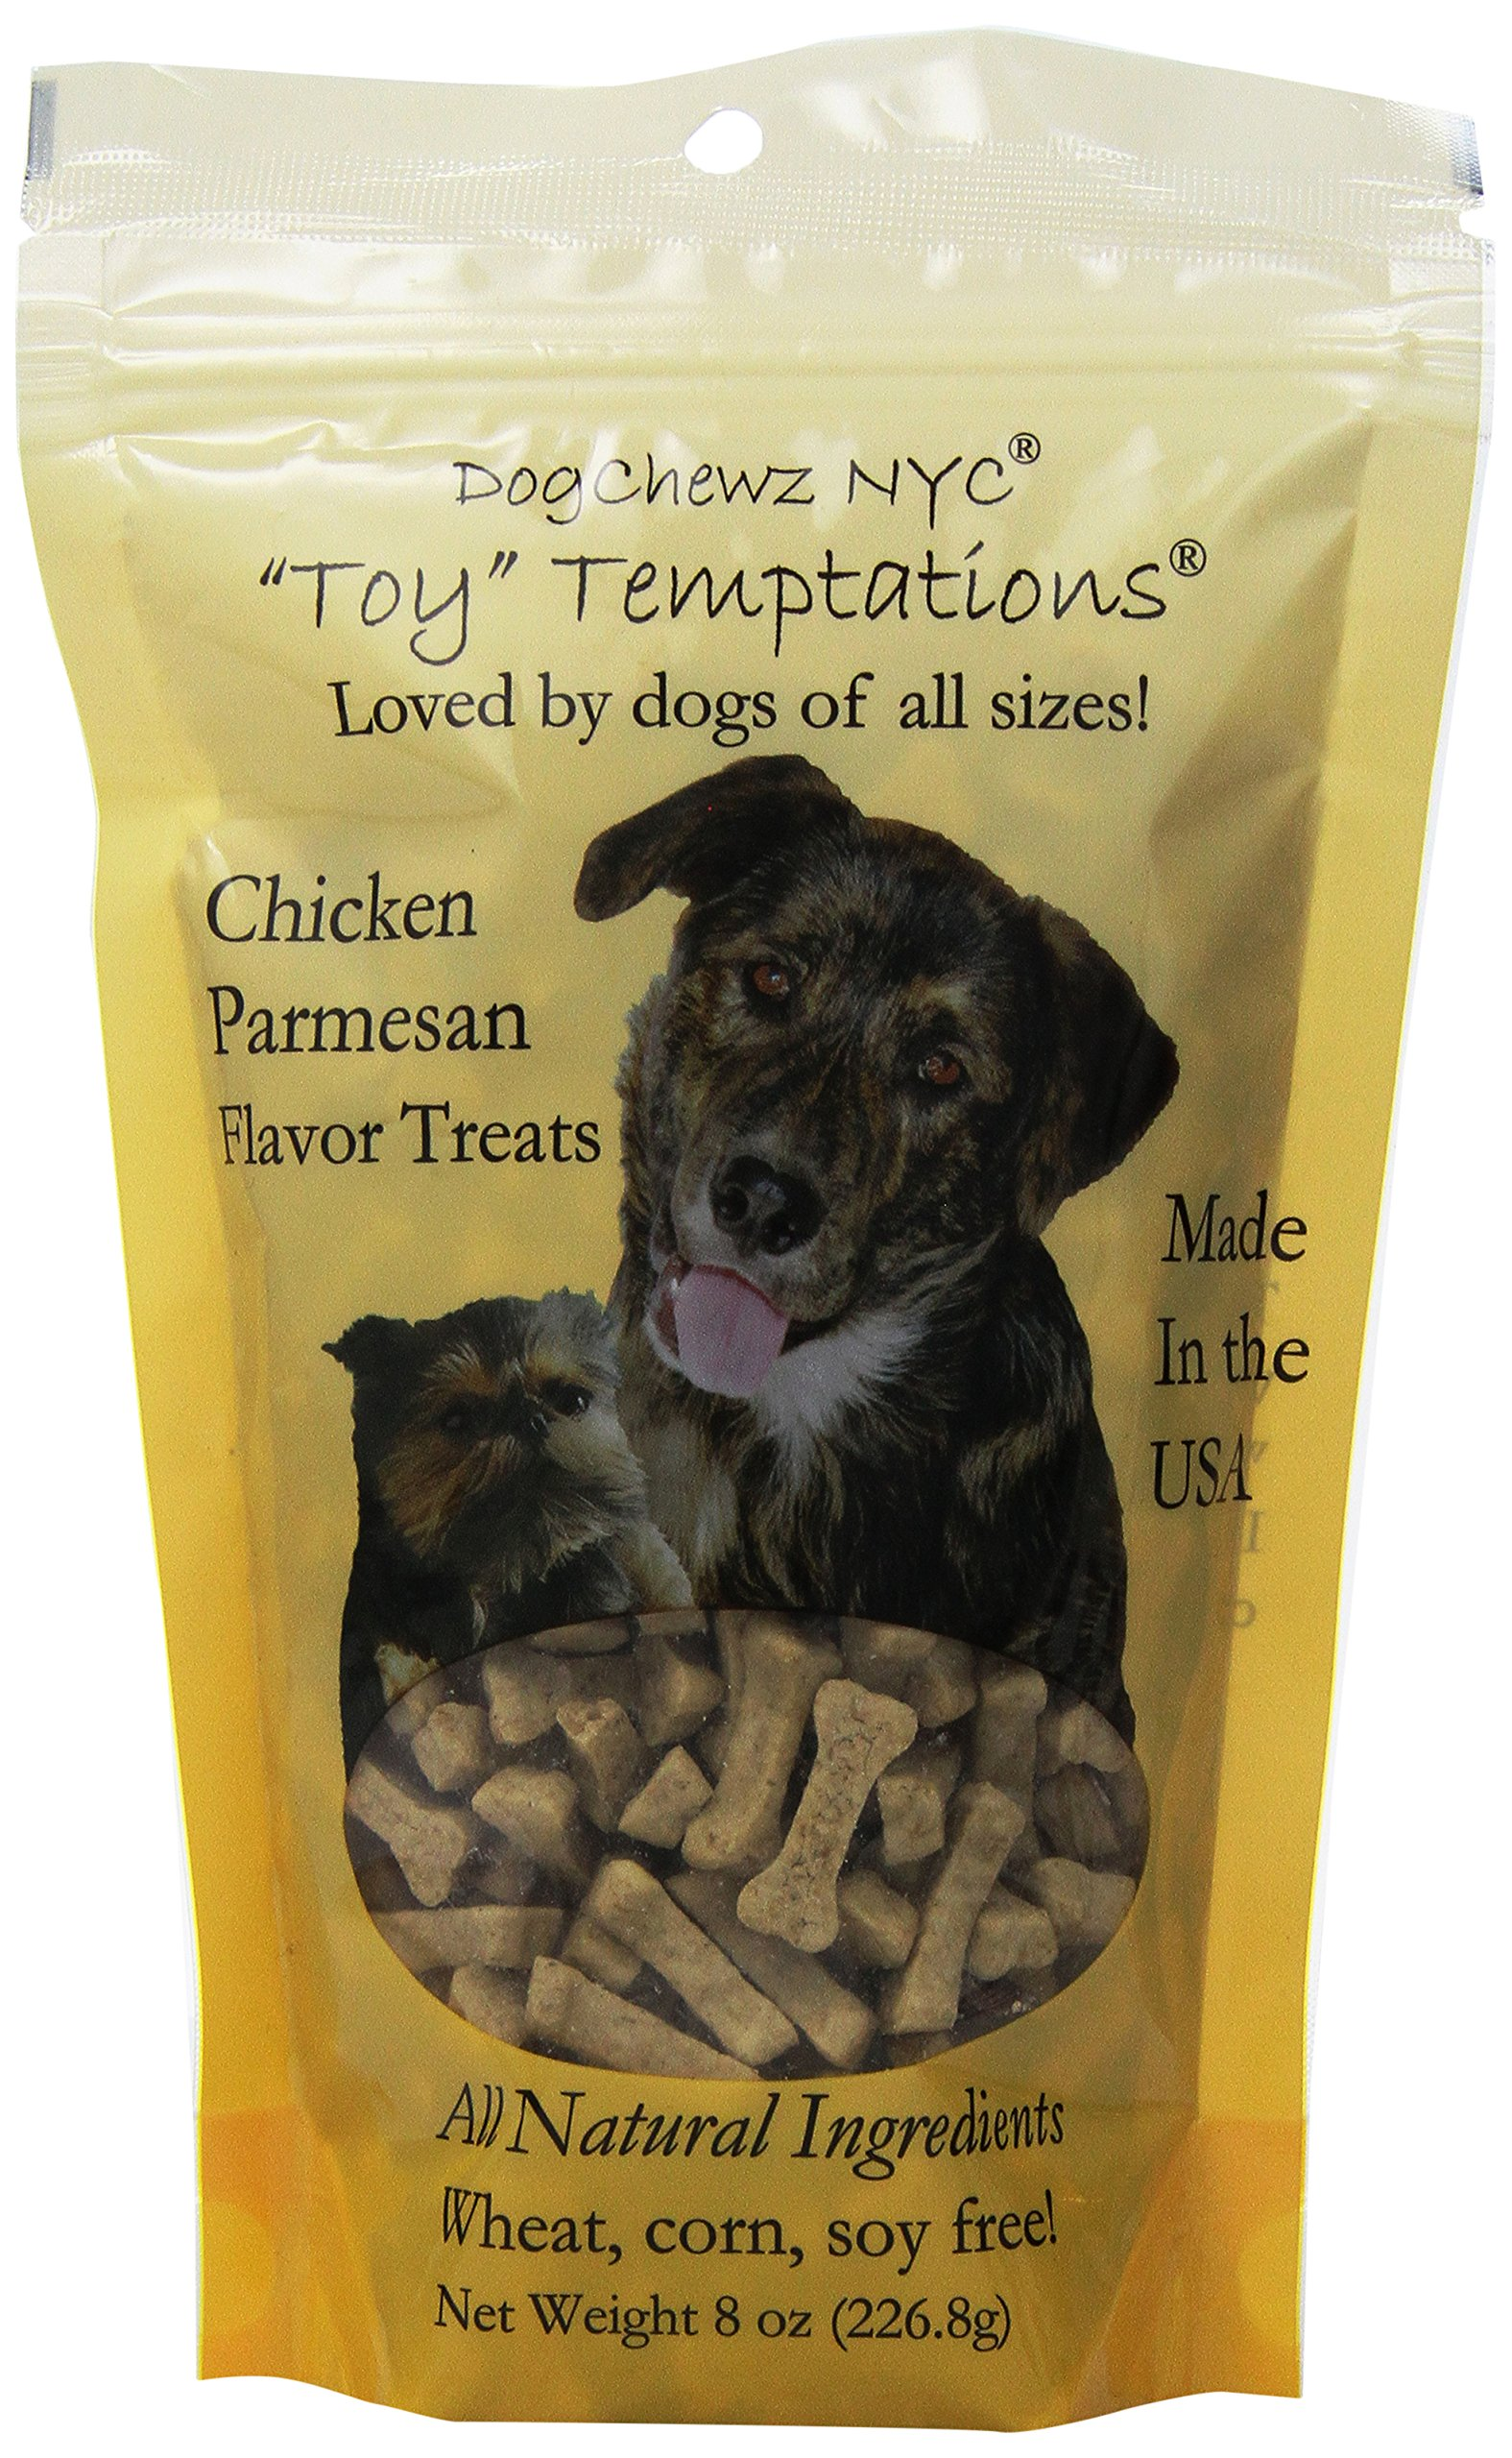 DogChewz NYC Toy Temptations All Natural Dog Treats, 8-Ounce, Chicken Parmesan